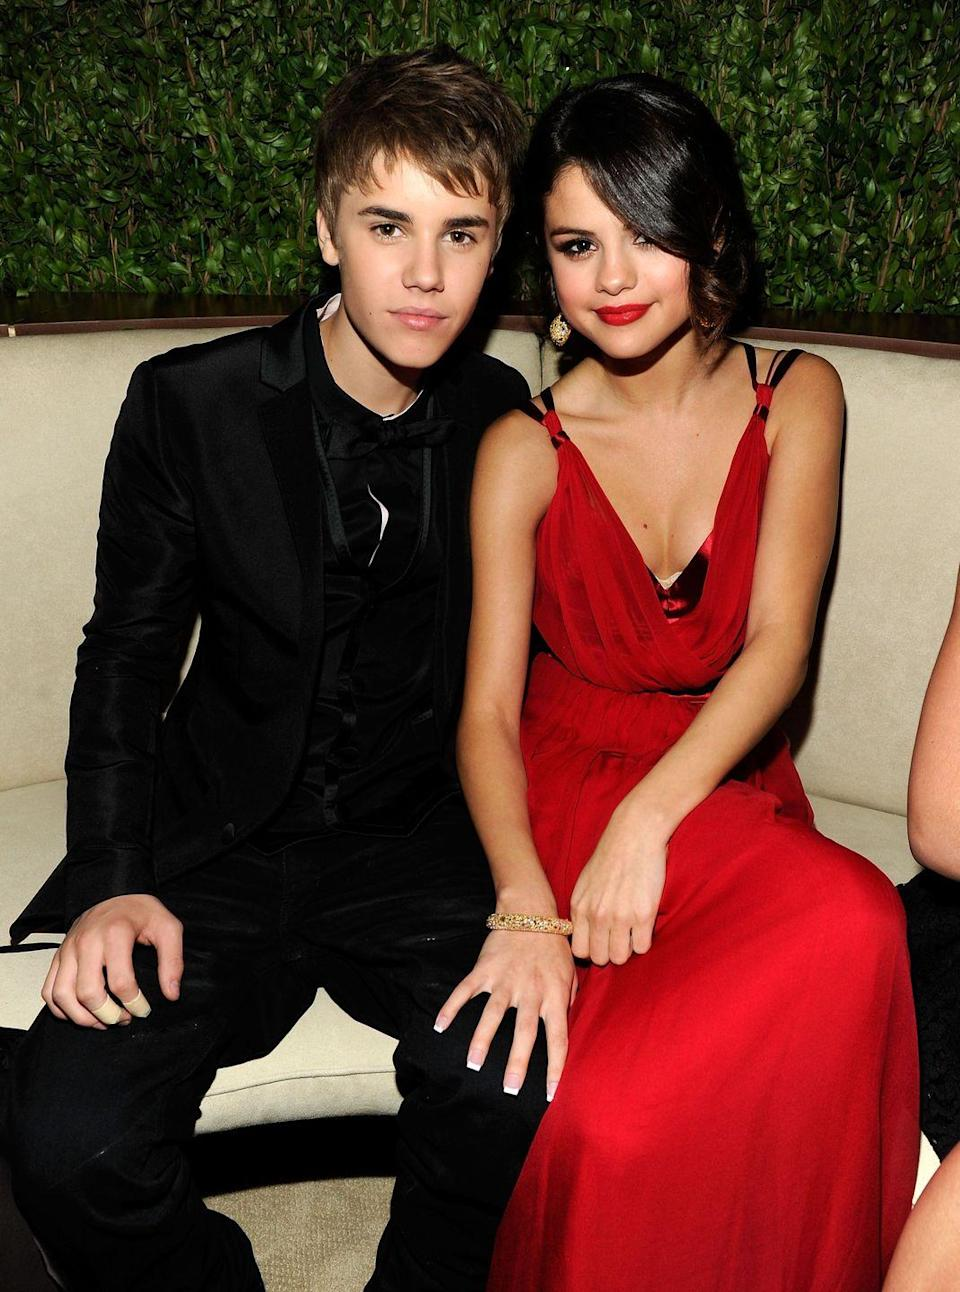 <p>Over the years, Selena and Justin have thrown shade at each other more times than they've been apart and back together again. Things reached a peak in 2016 when Justin threatened to shut down his social media after fans lashed out at him over a photo of Sofia Richie. </p><p>Then Selena got in there, commenting, 'If you can't handle the hate then stop posting pictures of your girlfriend lol,' before posting photos of herself with fans on Instagram. In response, Justin wrote, 'It's funny to see people that used me for attention and still try to point the finger this way. Sad. All love.' </p><p>The episode ended with Selena apologising on Snapchat ('What I said was selfish and pointless') and Justin deleting his Instagram entirely. (Don't worry, it returned a few months later.) </p>